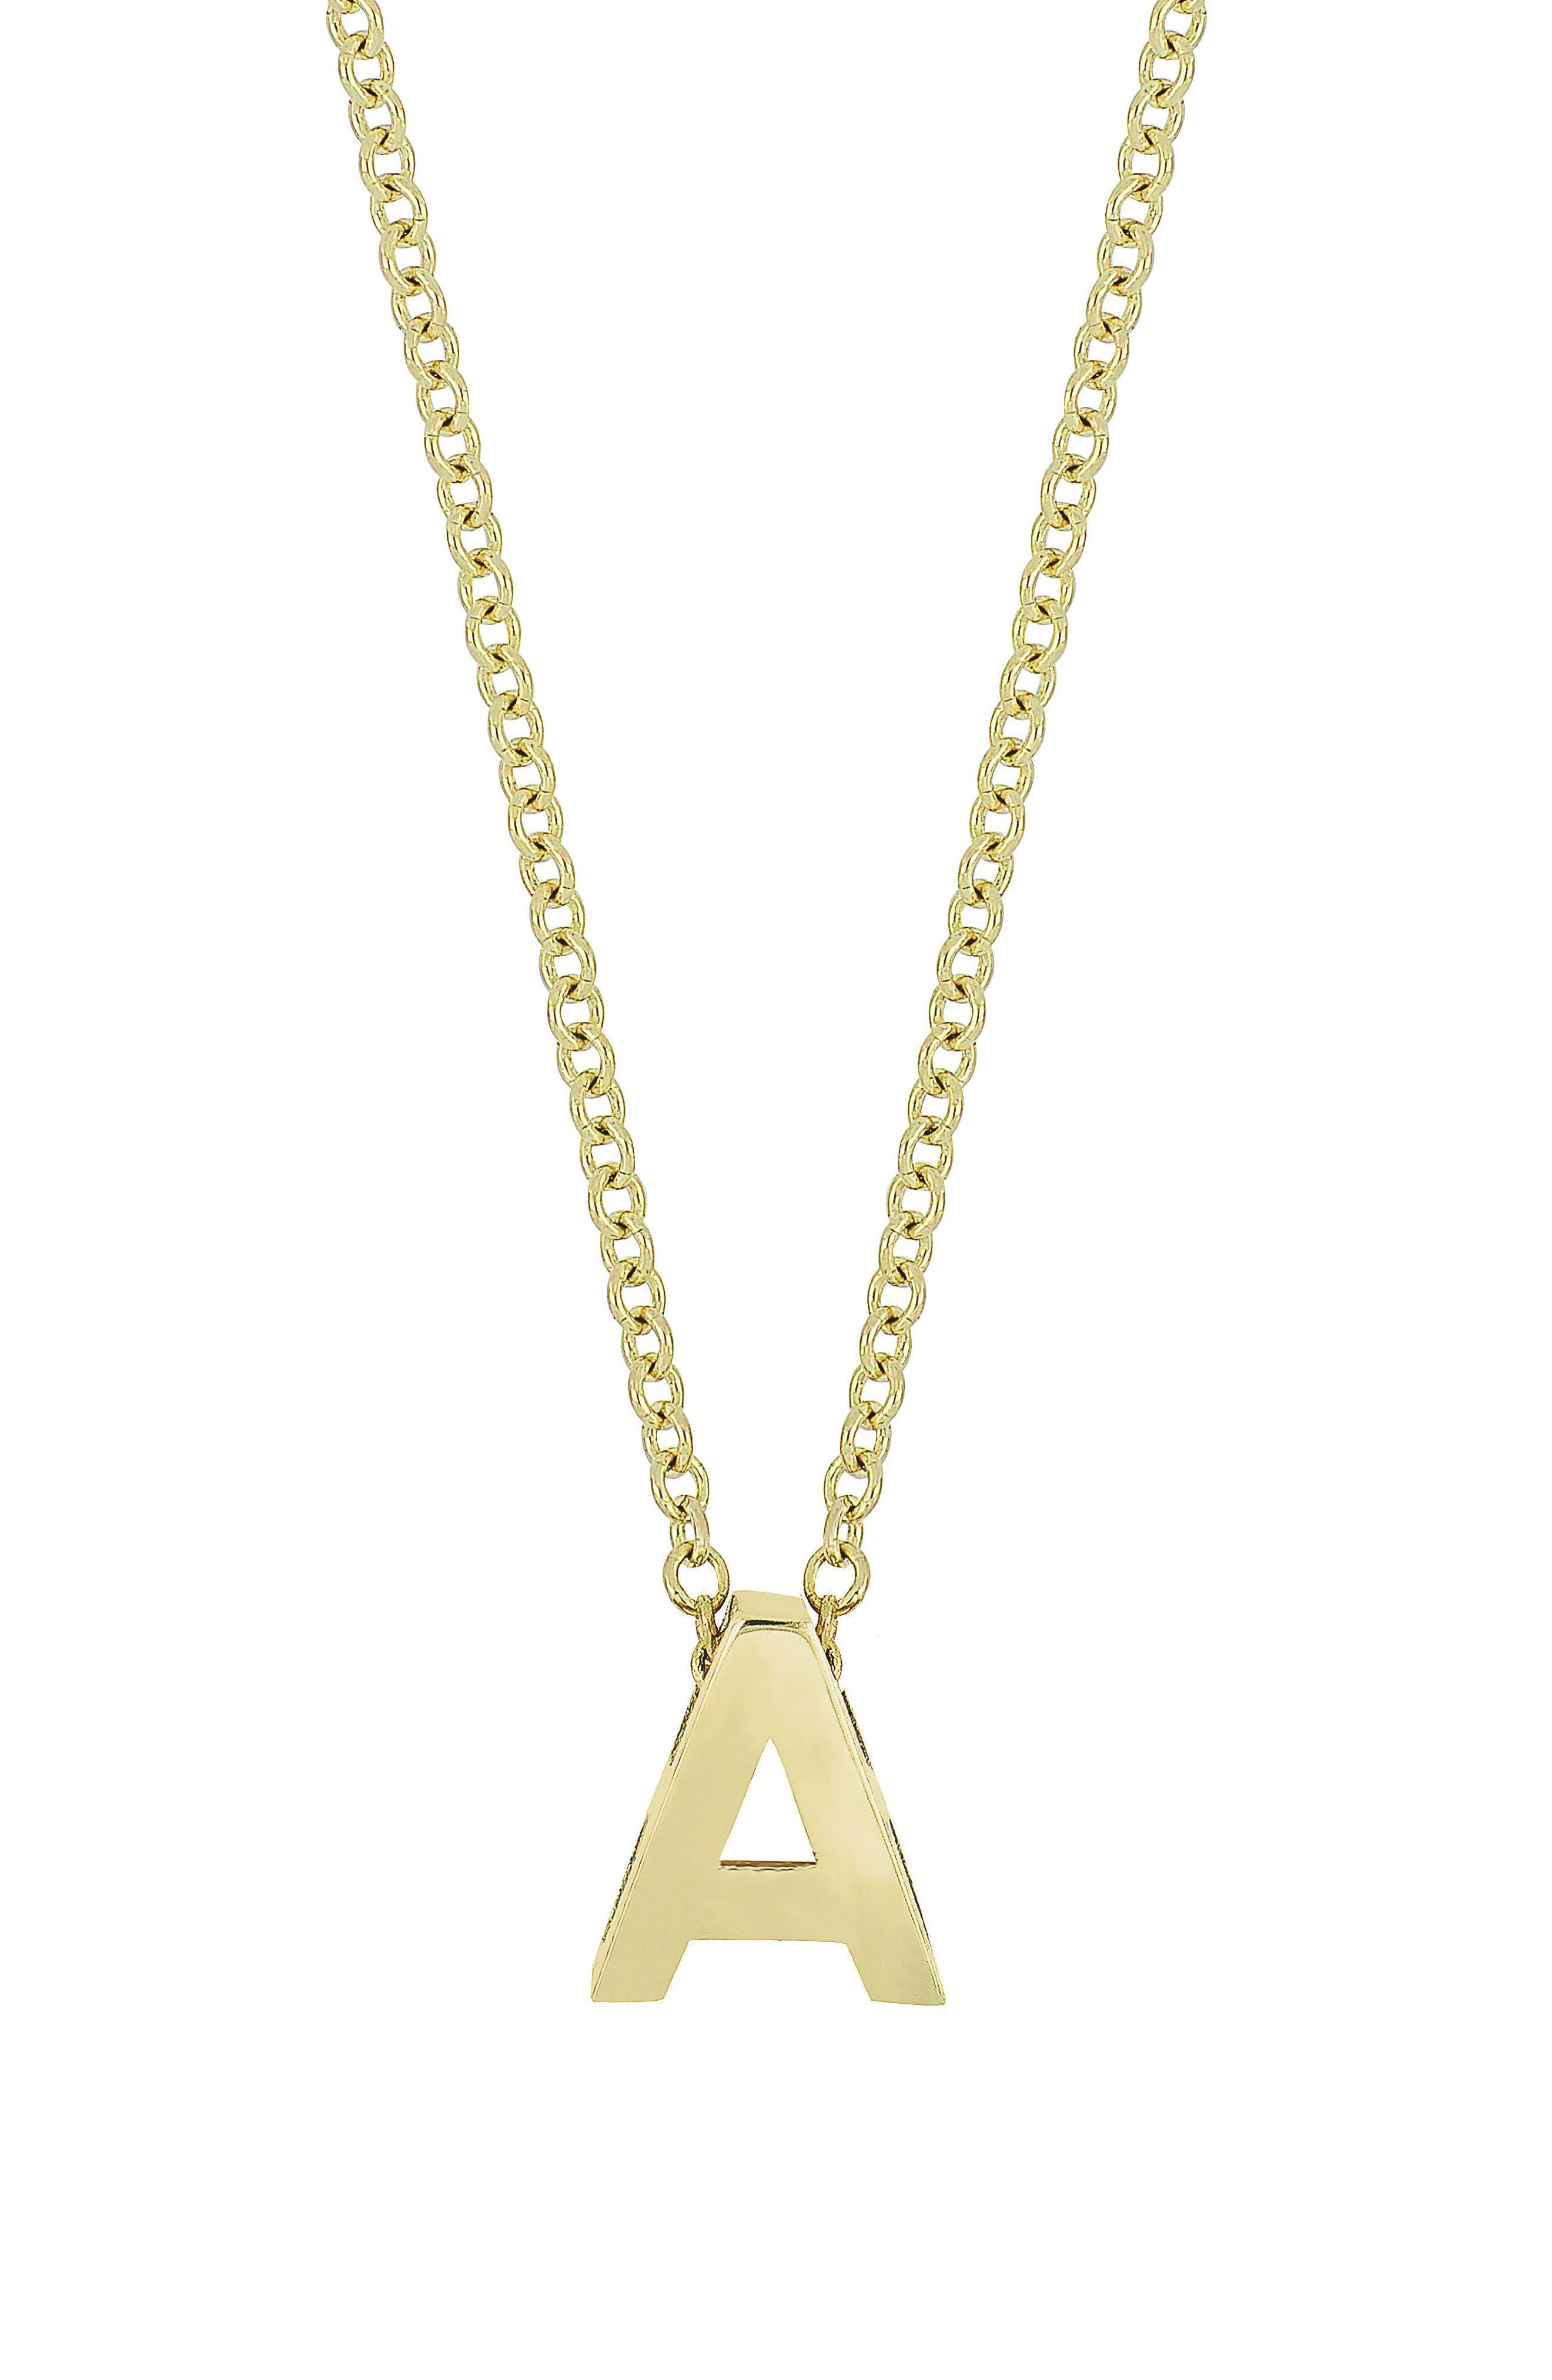 Initial Pendant Necklace,                         Main,                         color, YELLOW GOLD- A